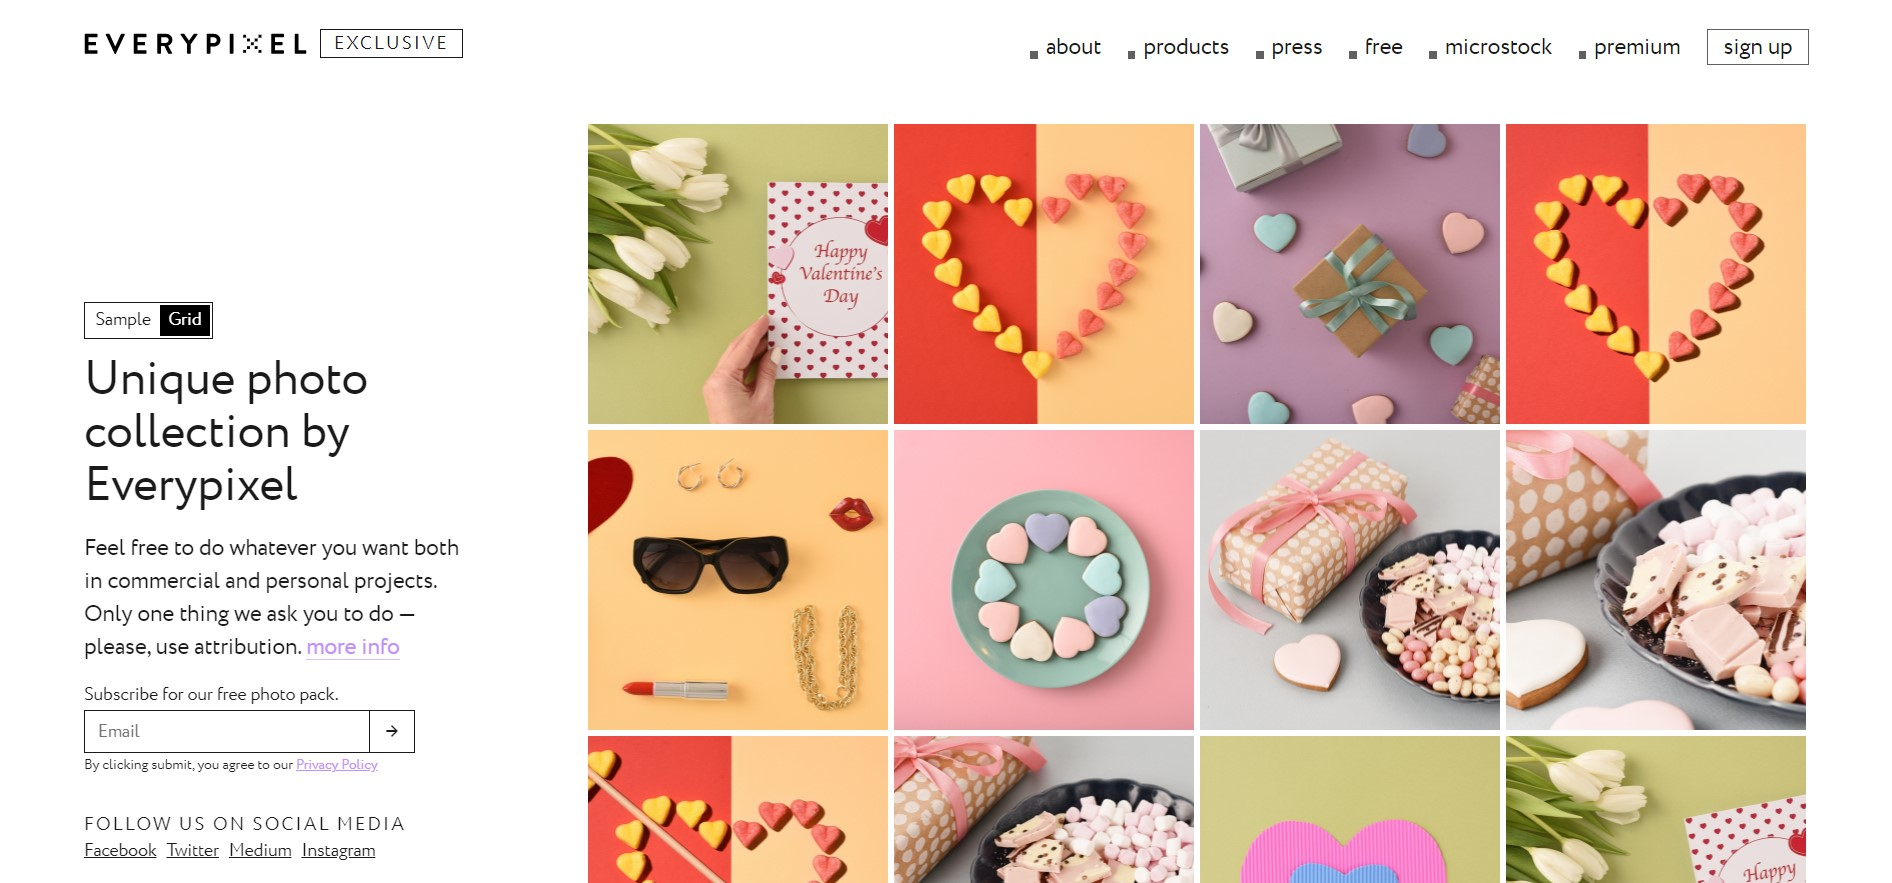 Free Images by Everypixel Exclusive